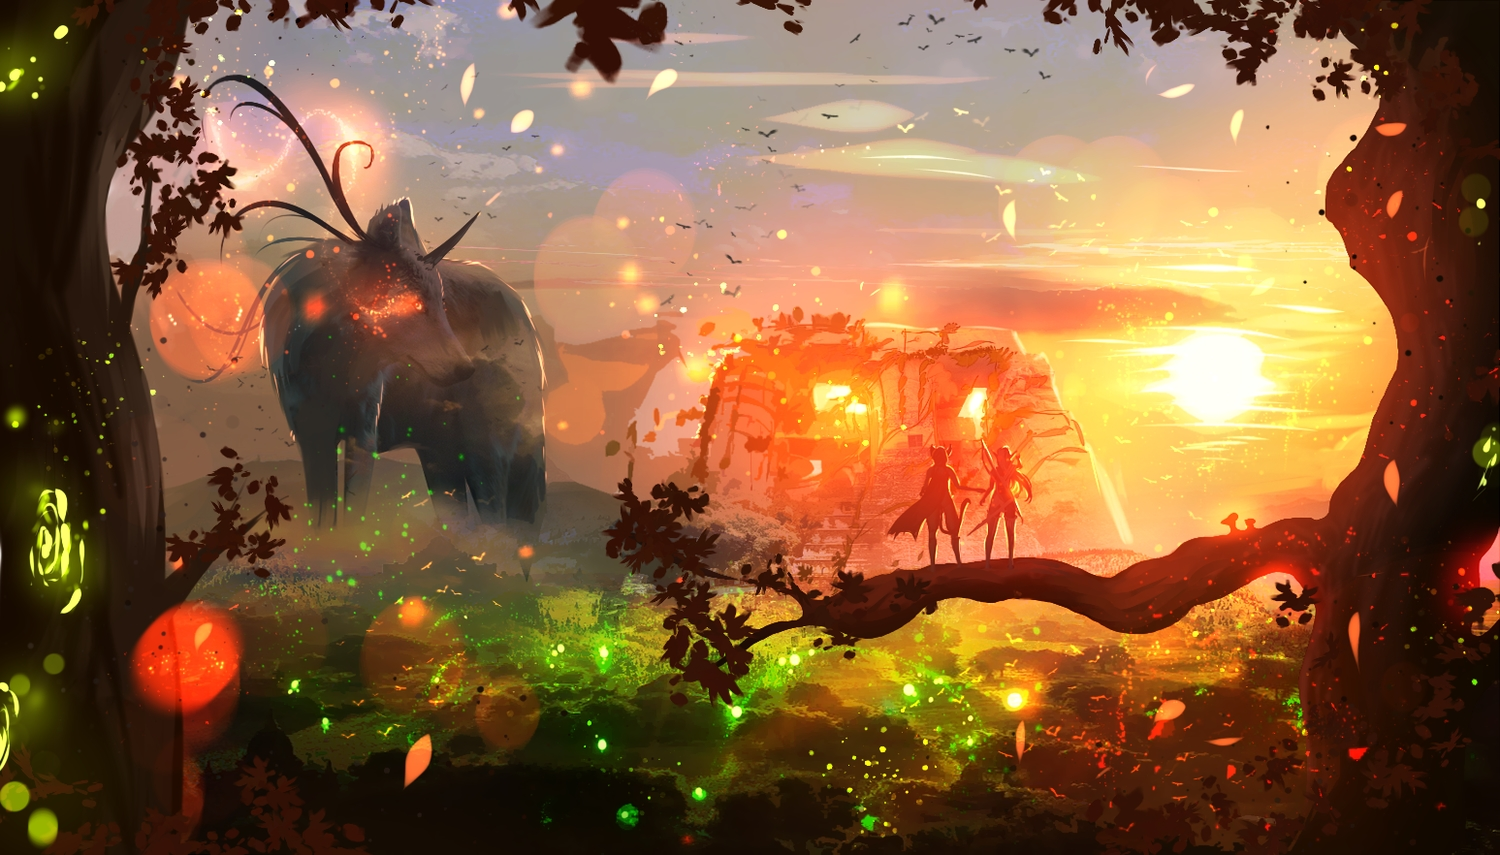 animal bow_(weapon) cape landscape leaves long_hair original pointed_ears ryky scenic skirt sunset tree weapon wolf